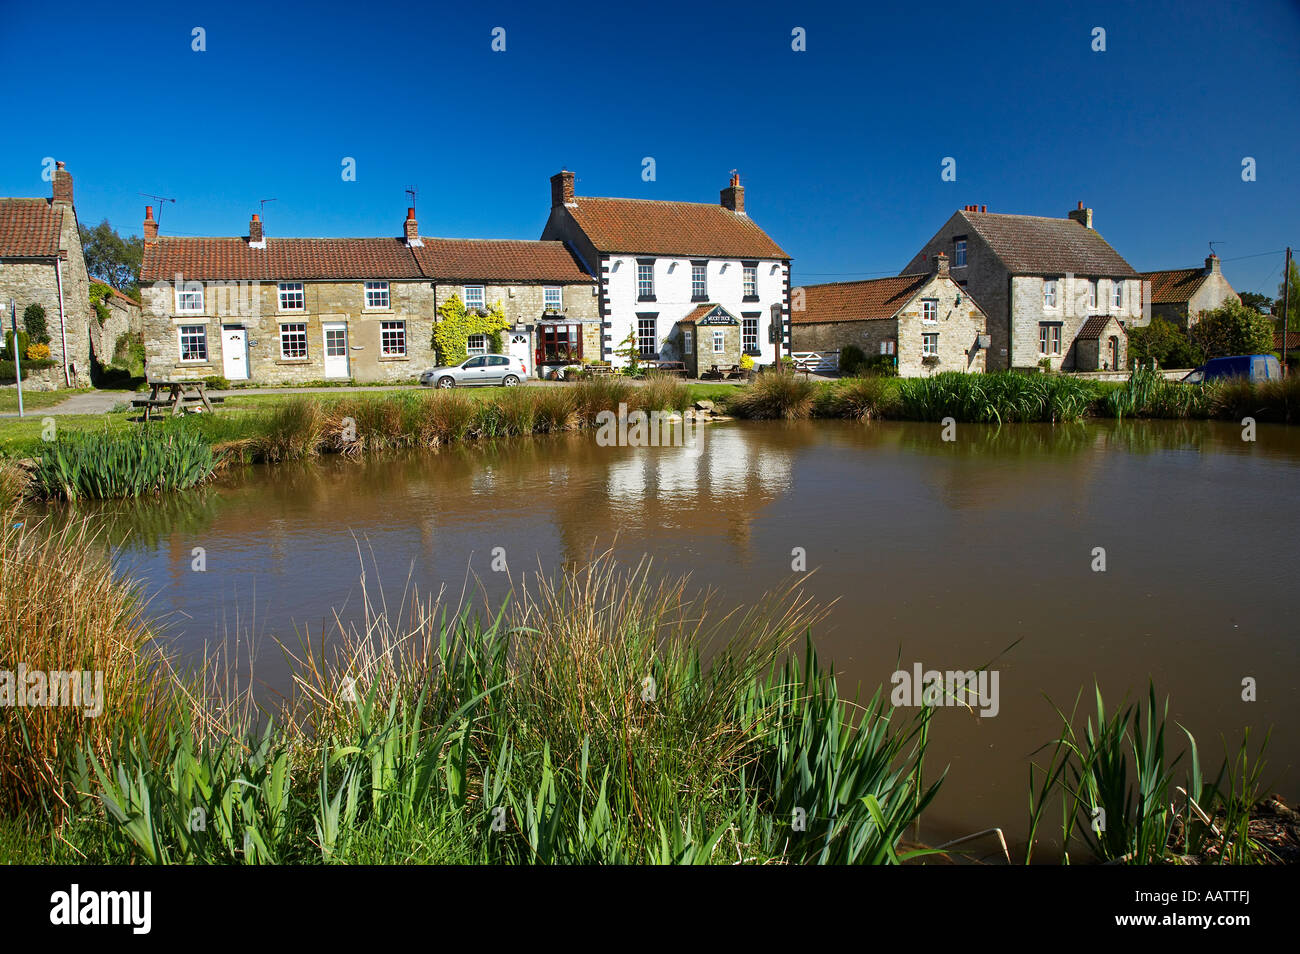 The Mucky Duck Public House and village pond Newton upon Rawcliffe village near Pickering North Yorkshire Moors Stock Photo